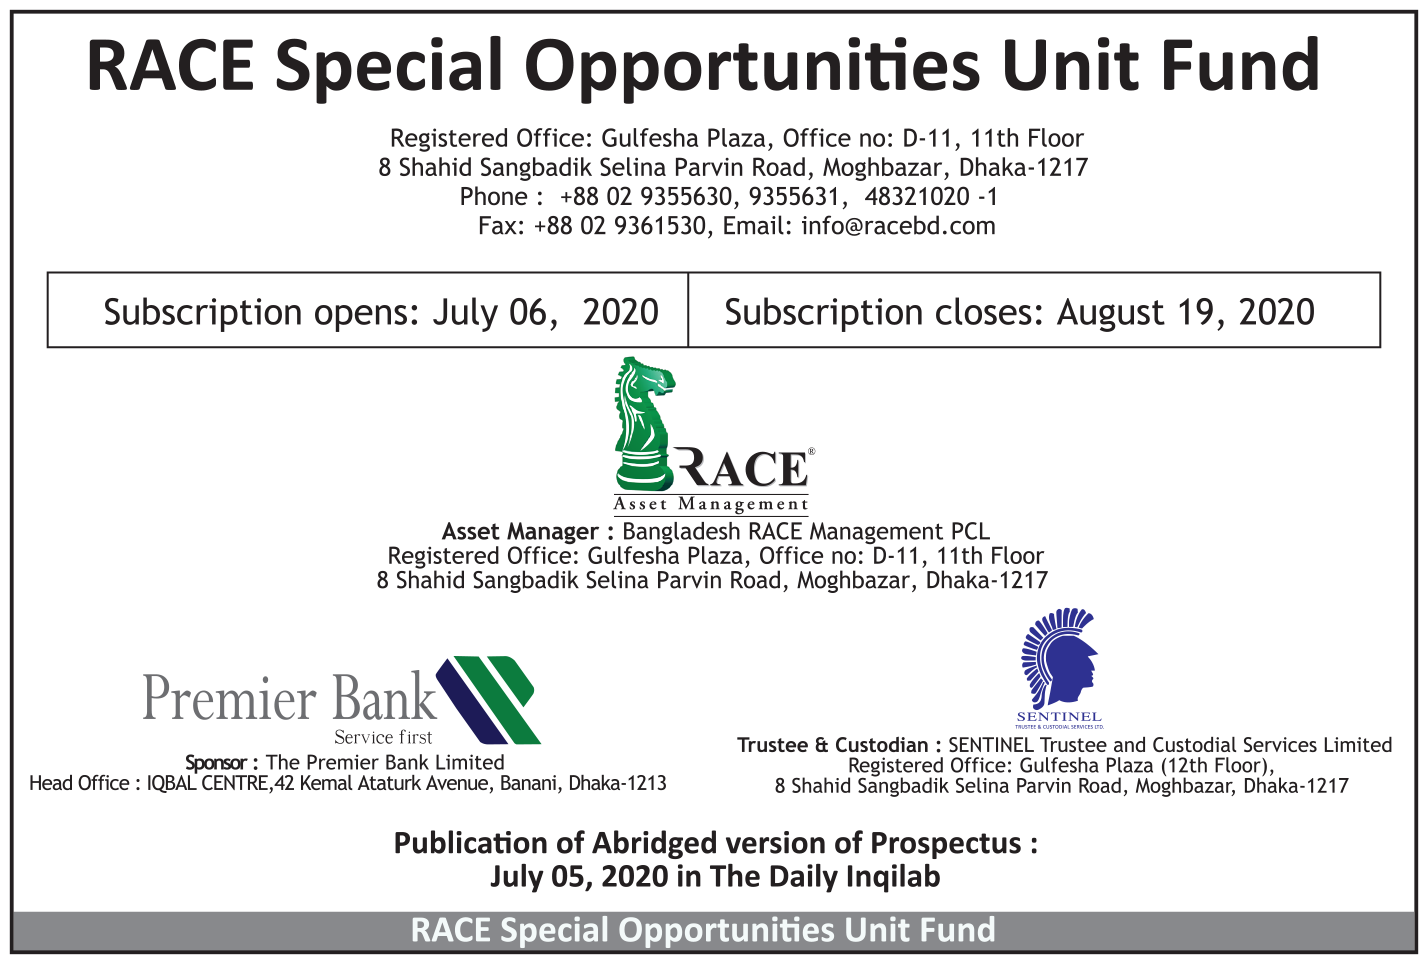 RACE-Special-Opportunities-Unit-Fund